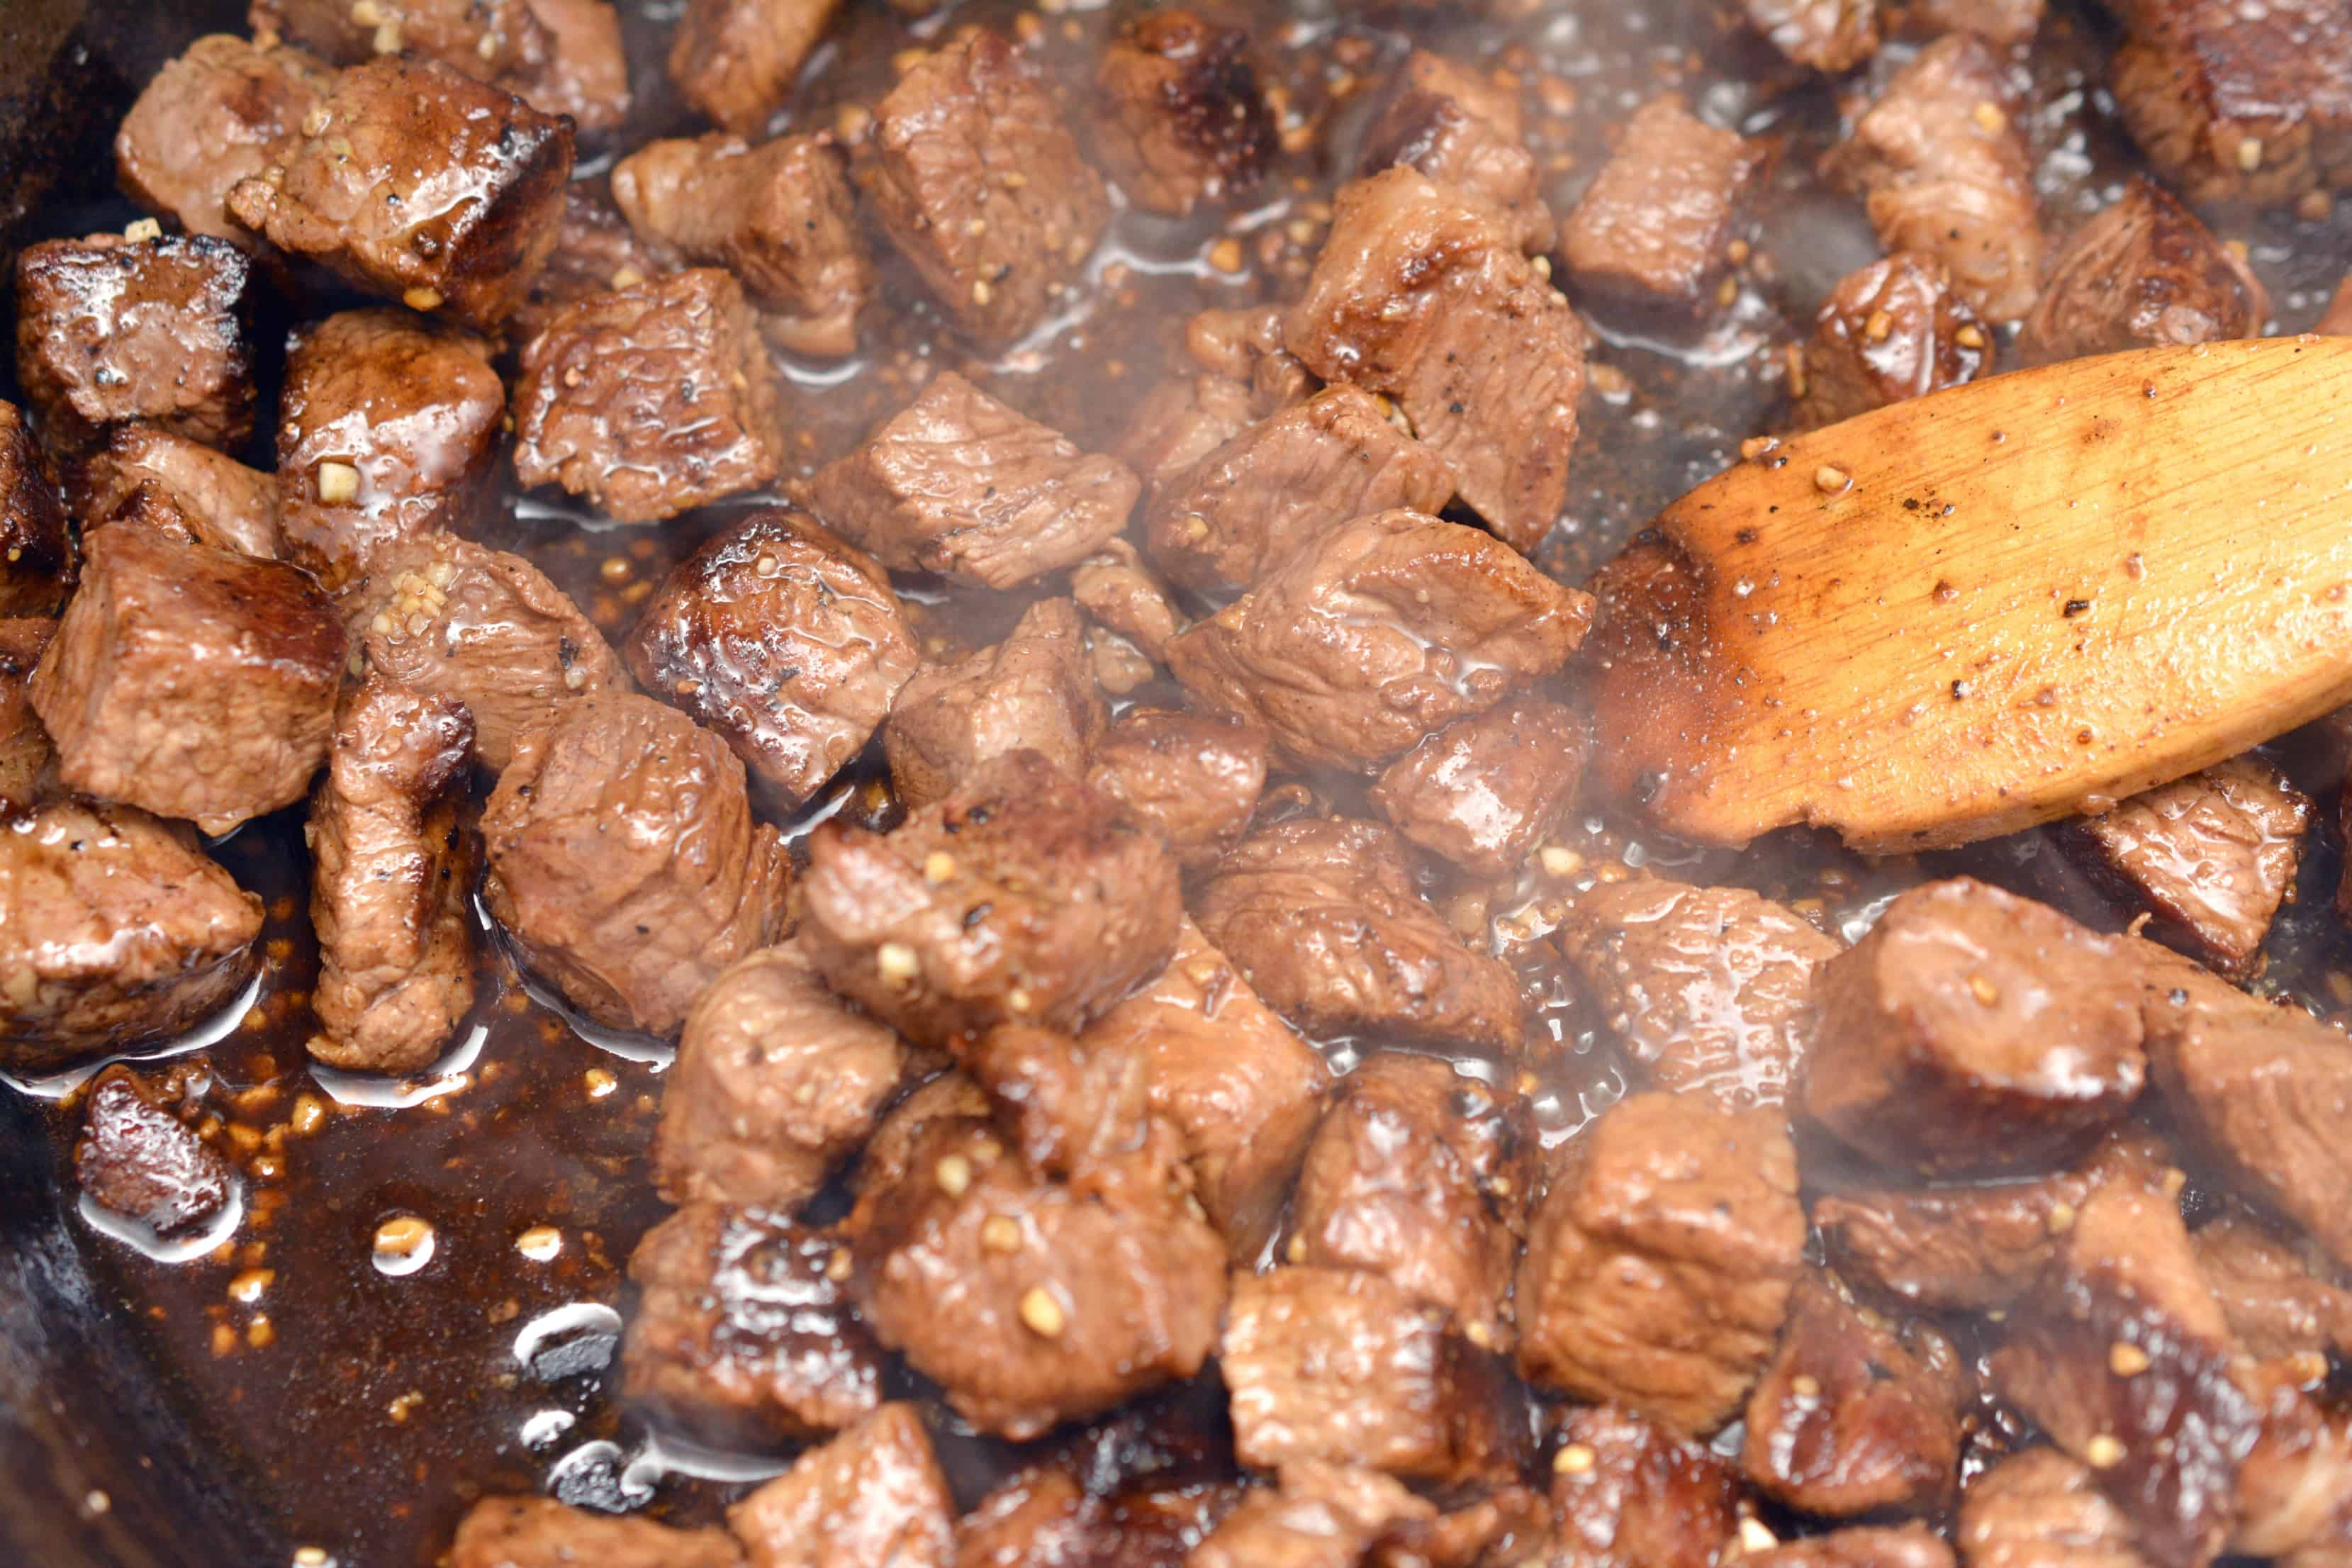 steak bites simmering in pan on stove